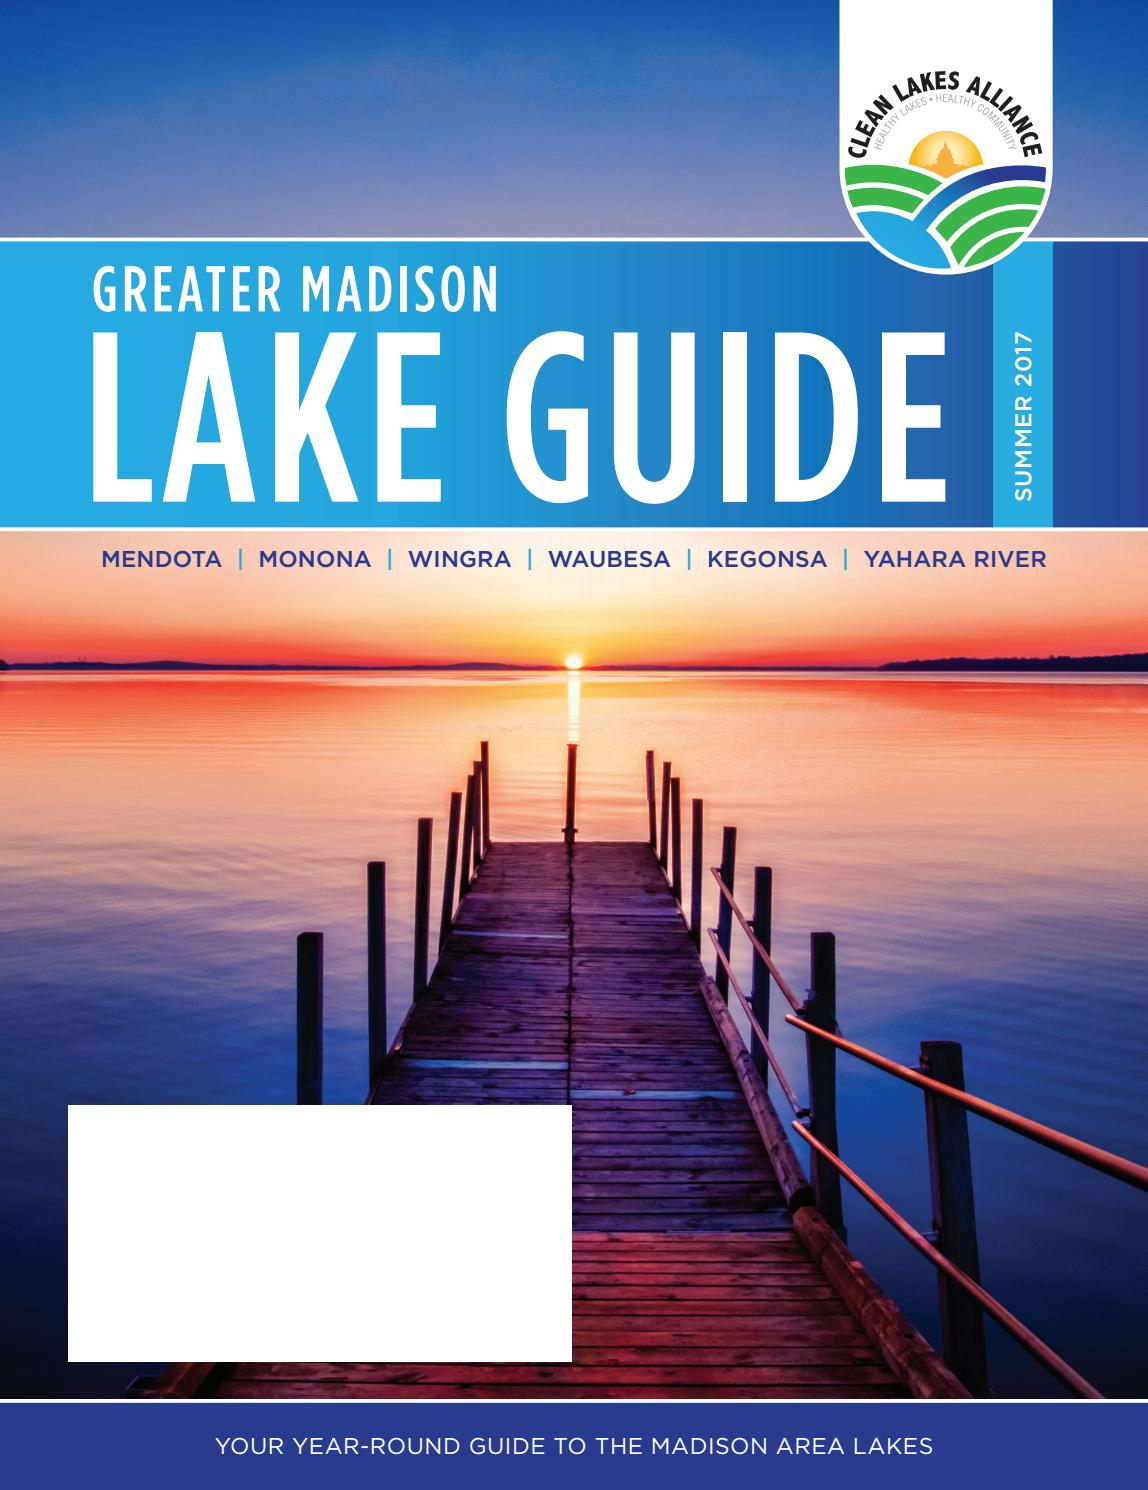 greater madison lake guide summer 2017 by clean lakes alliance